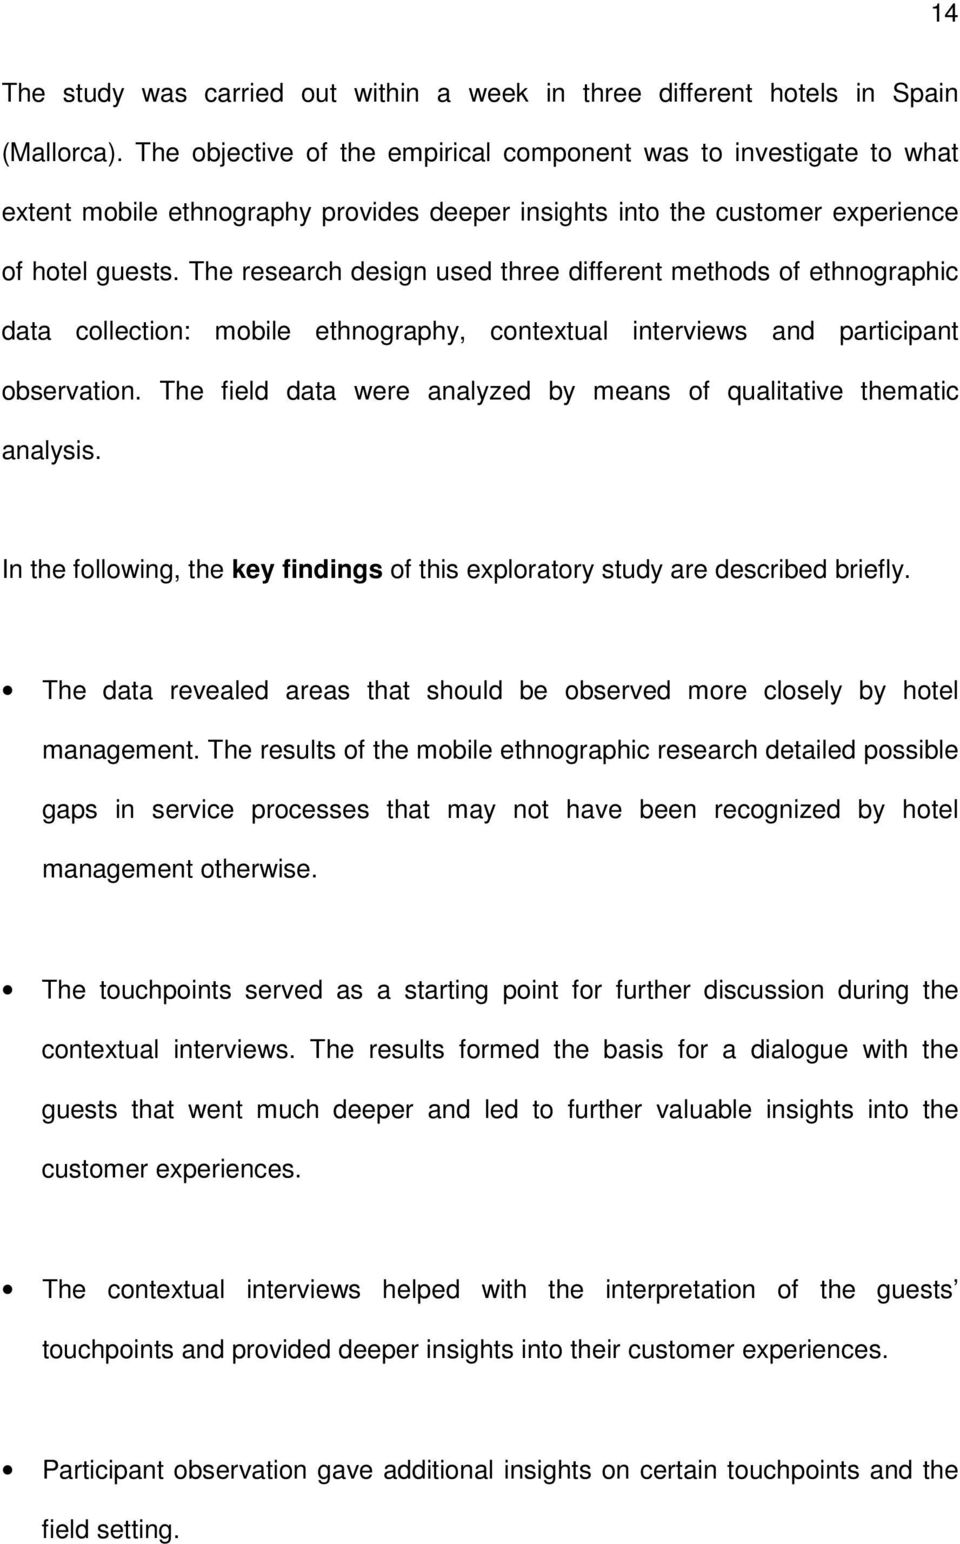 The research design used three different methods of ethnographic data collection: mobile ethnography, contextual interviews and participant observation.